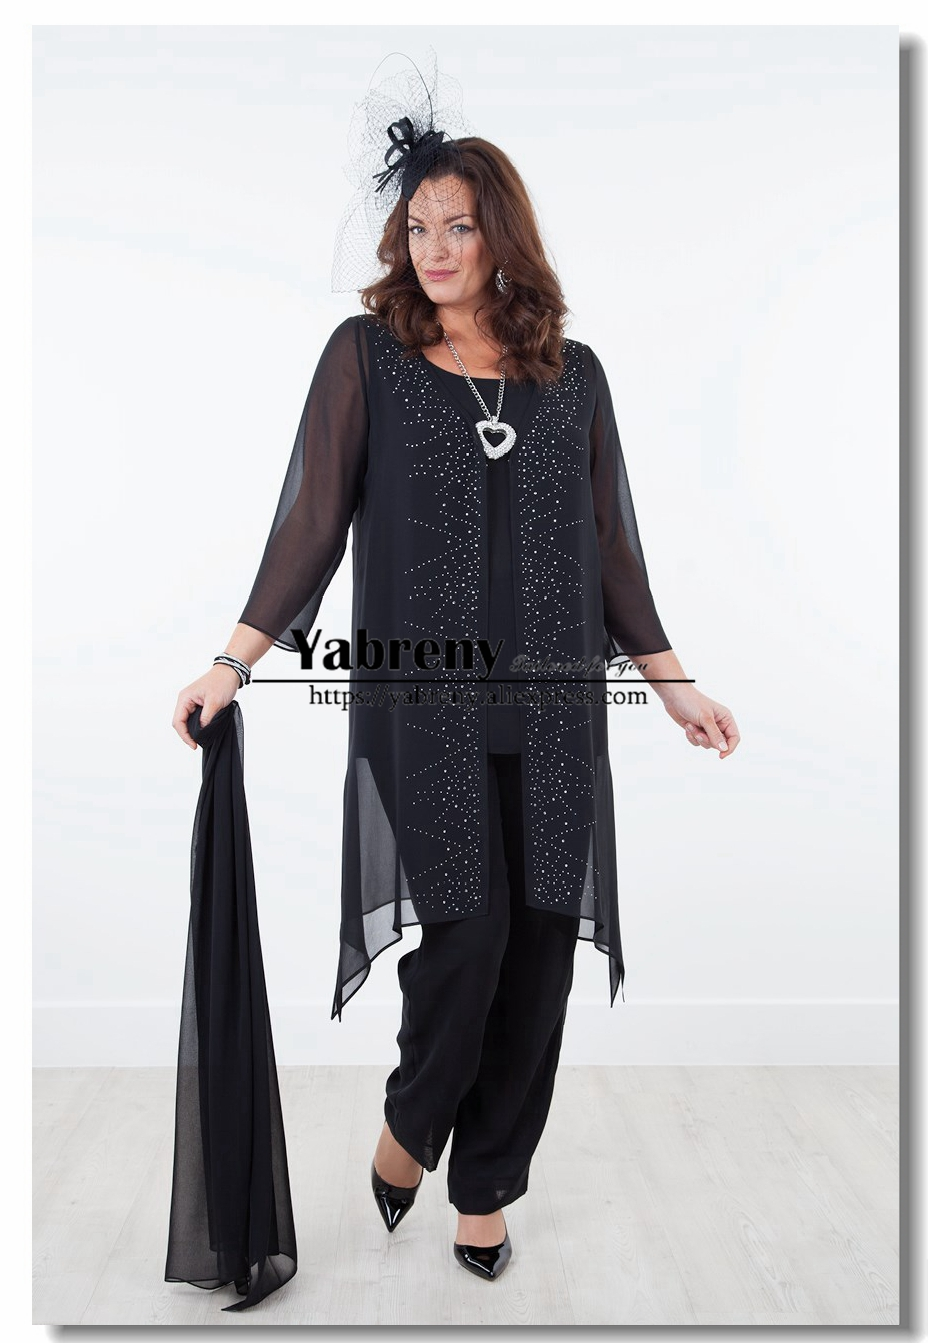 2019 New arrival Plus size Chiffon Elastic waist Mother of the bride pants suits with shawl Black Navy